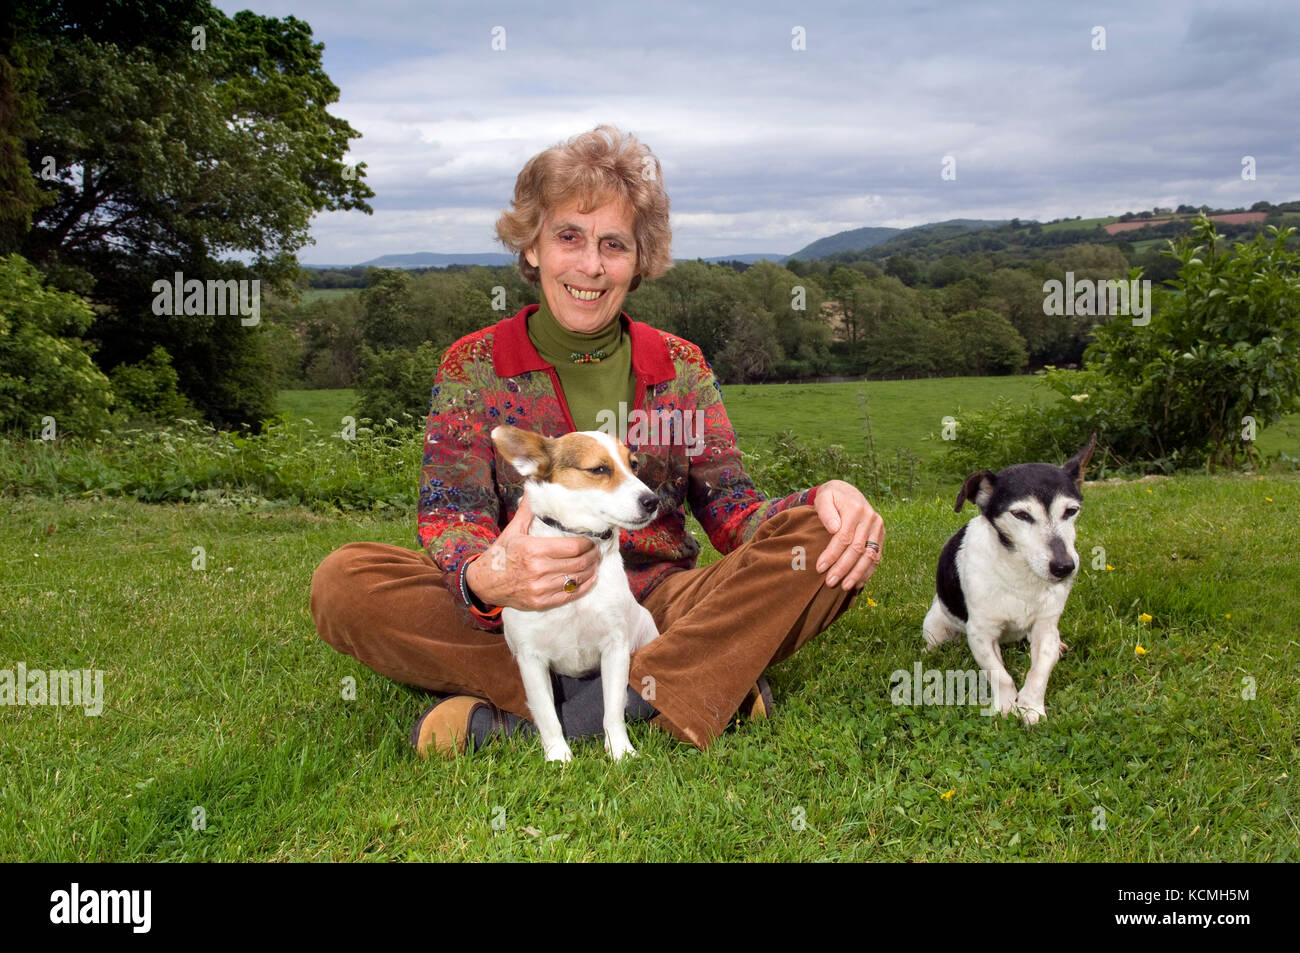 Revel Guest, filmmaker, author, journalist and chair of the Hay Festival (site seen behind some pictures) - Stock Image